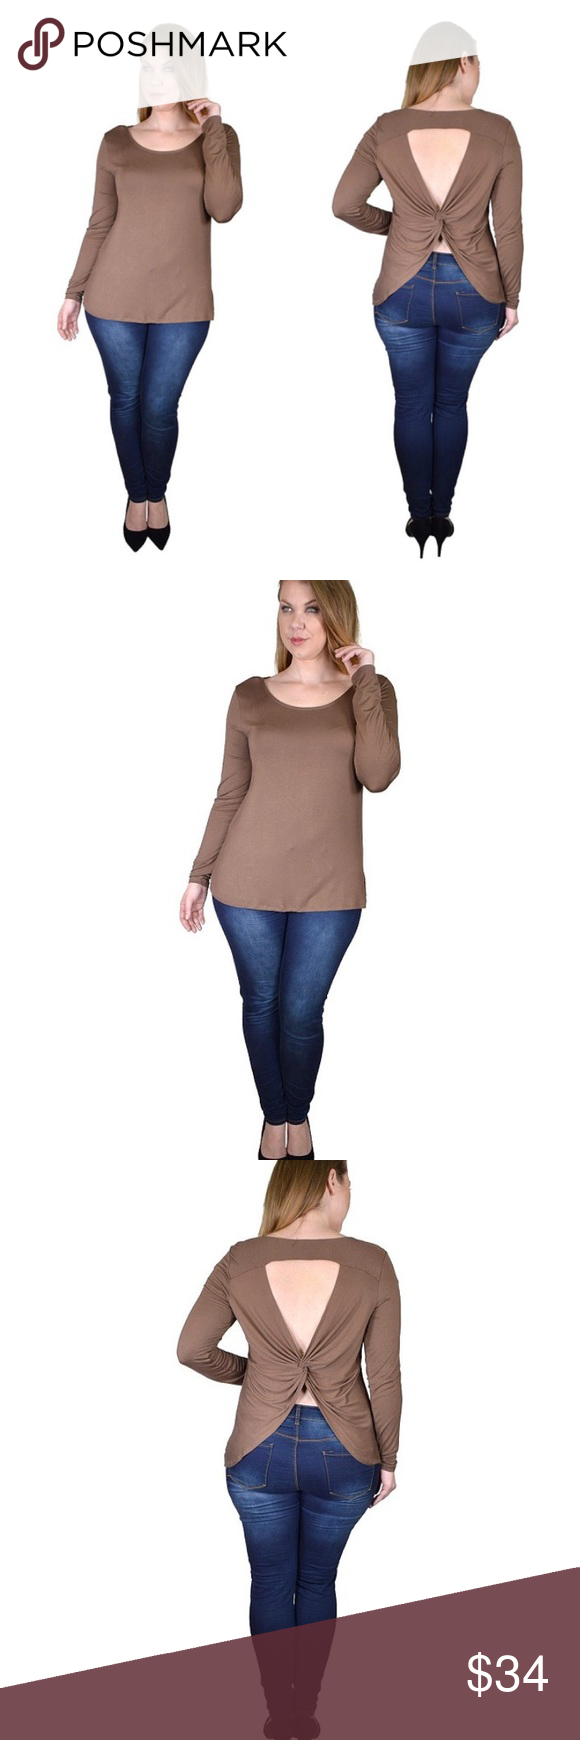 Taupe brown open back top Please see details in pictures if you have any other questions please let me know ! Tops